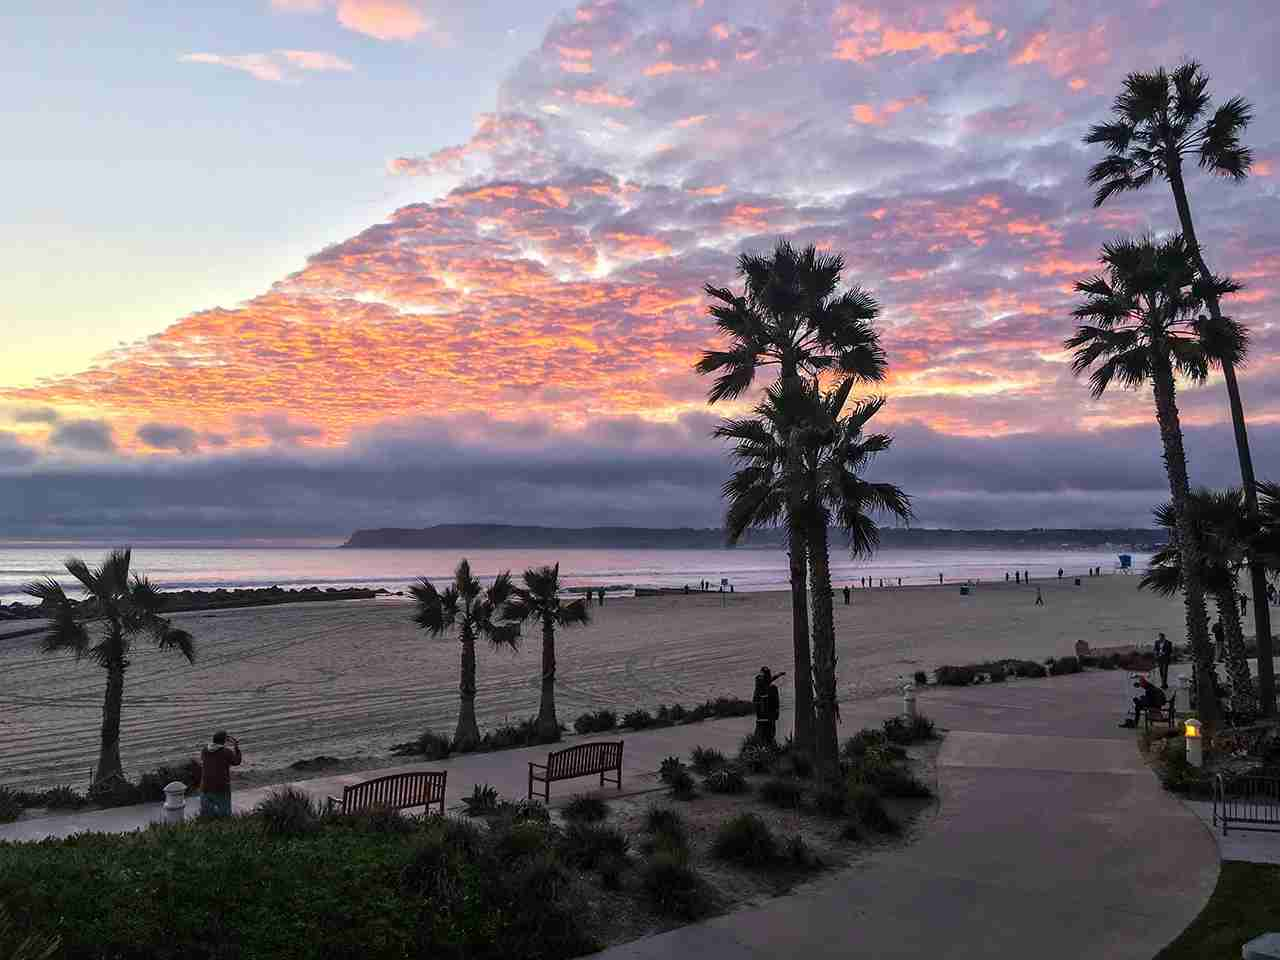 Sunset on Coronado Island Beach, California, USA